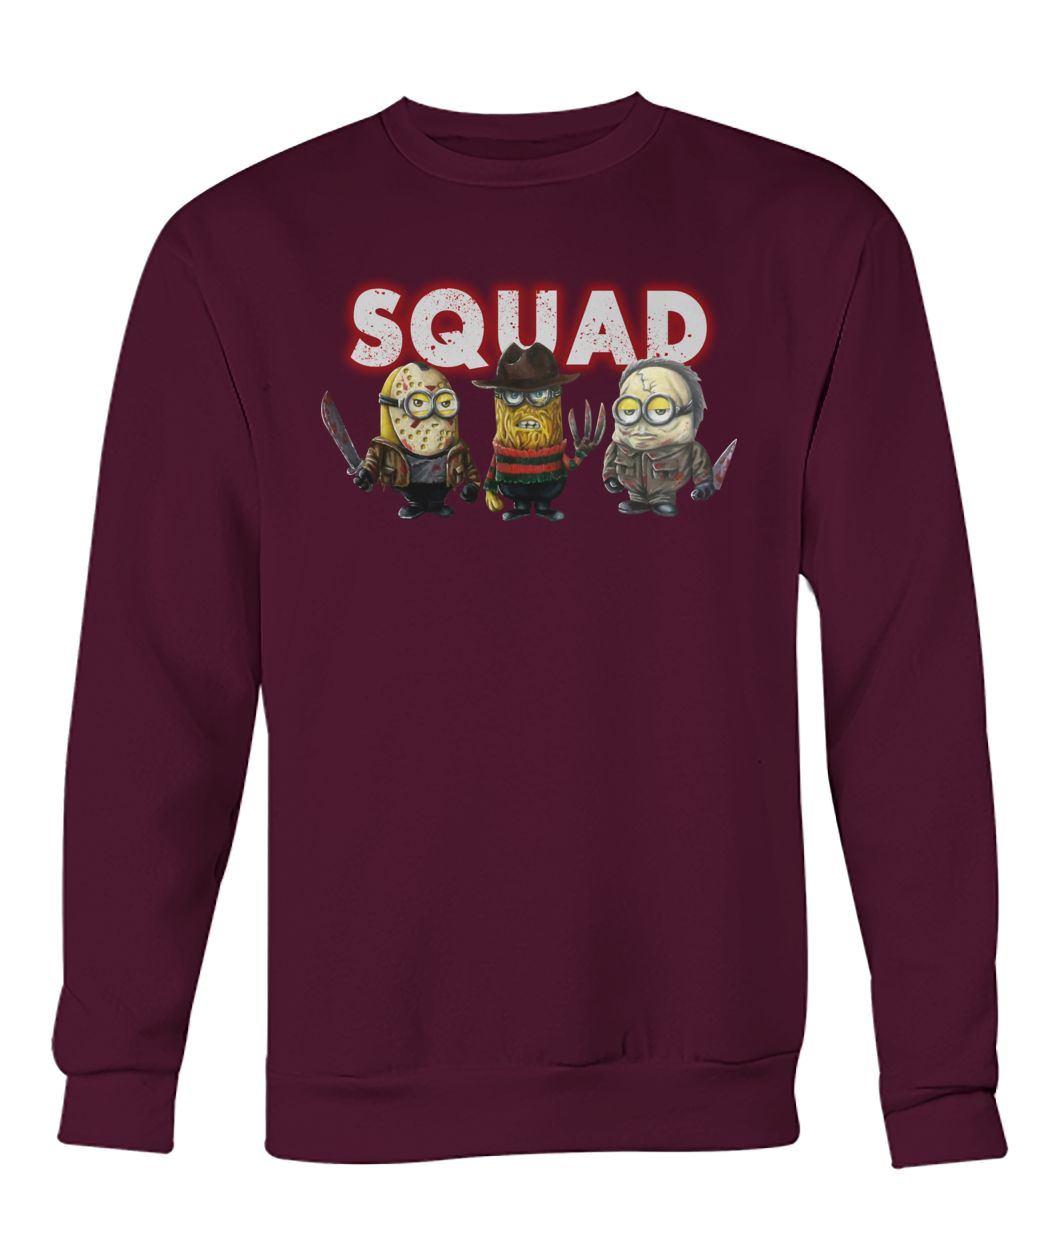 Minions the nightmare ends on halloween squad crew neck sweatshirt